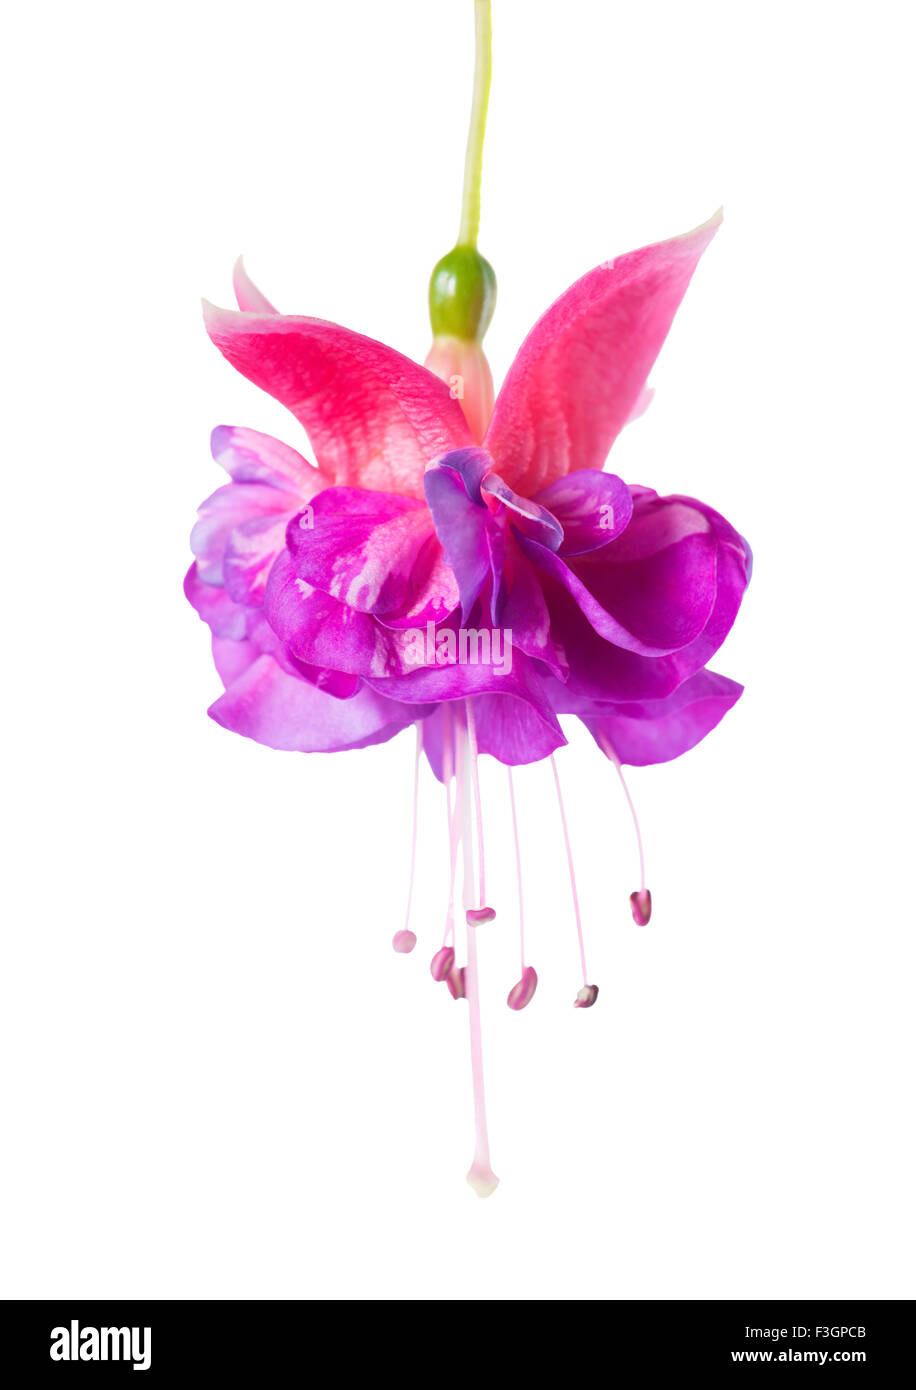 Blooming Beautiful Single Flower Of Lilac And Pink Fuchsia Is Stock